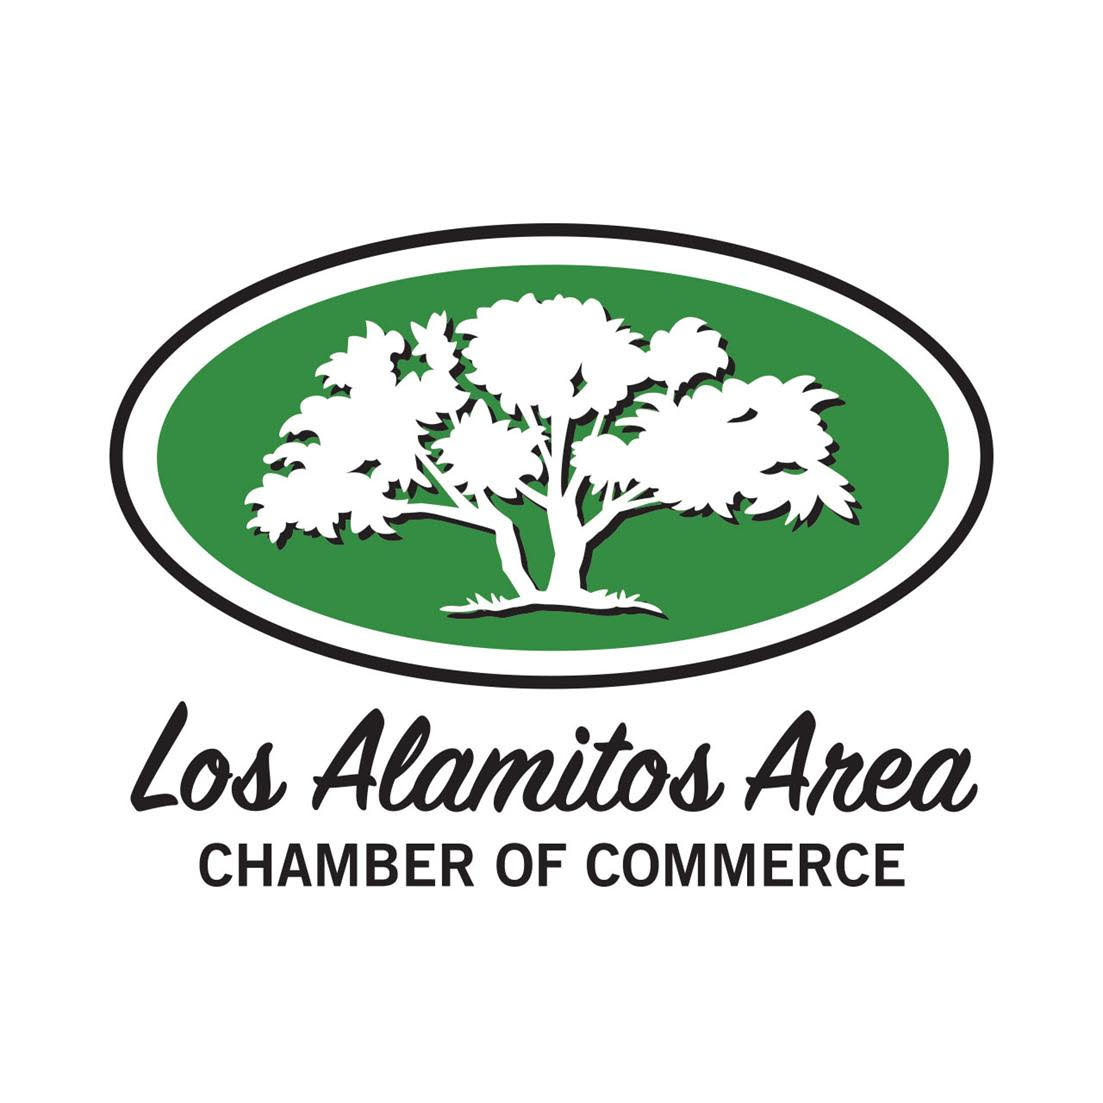 The Los Alamitos Area Chamber of Commerce